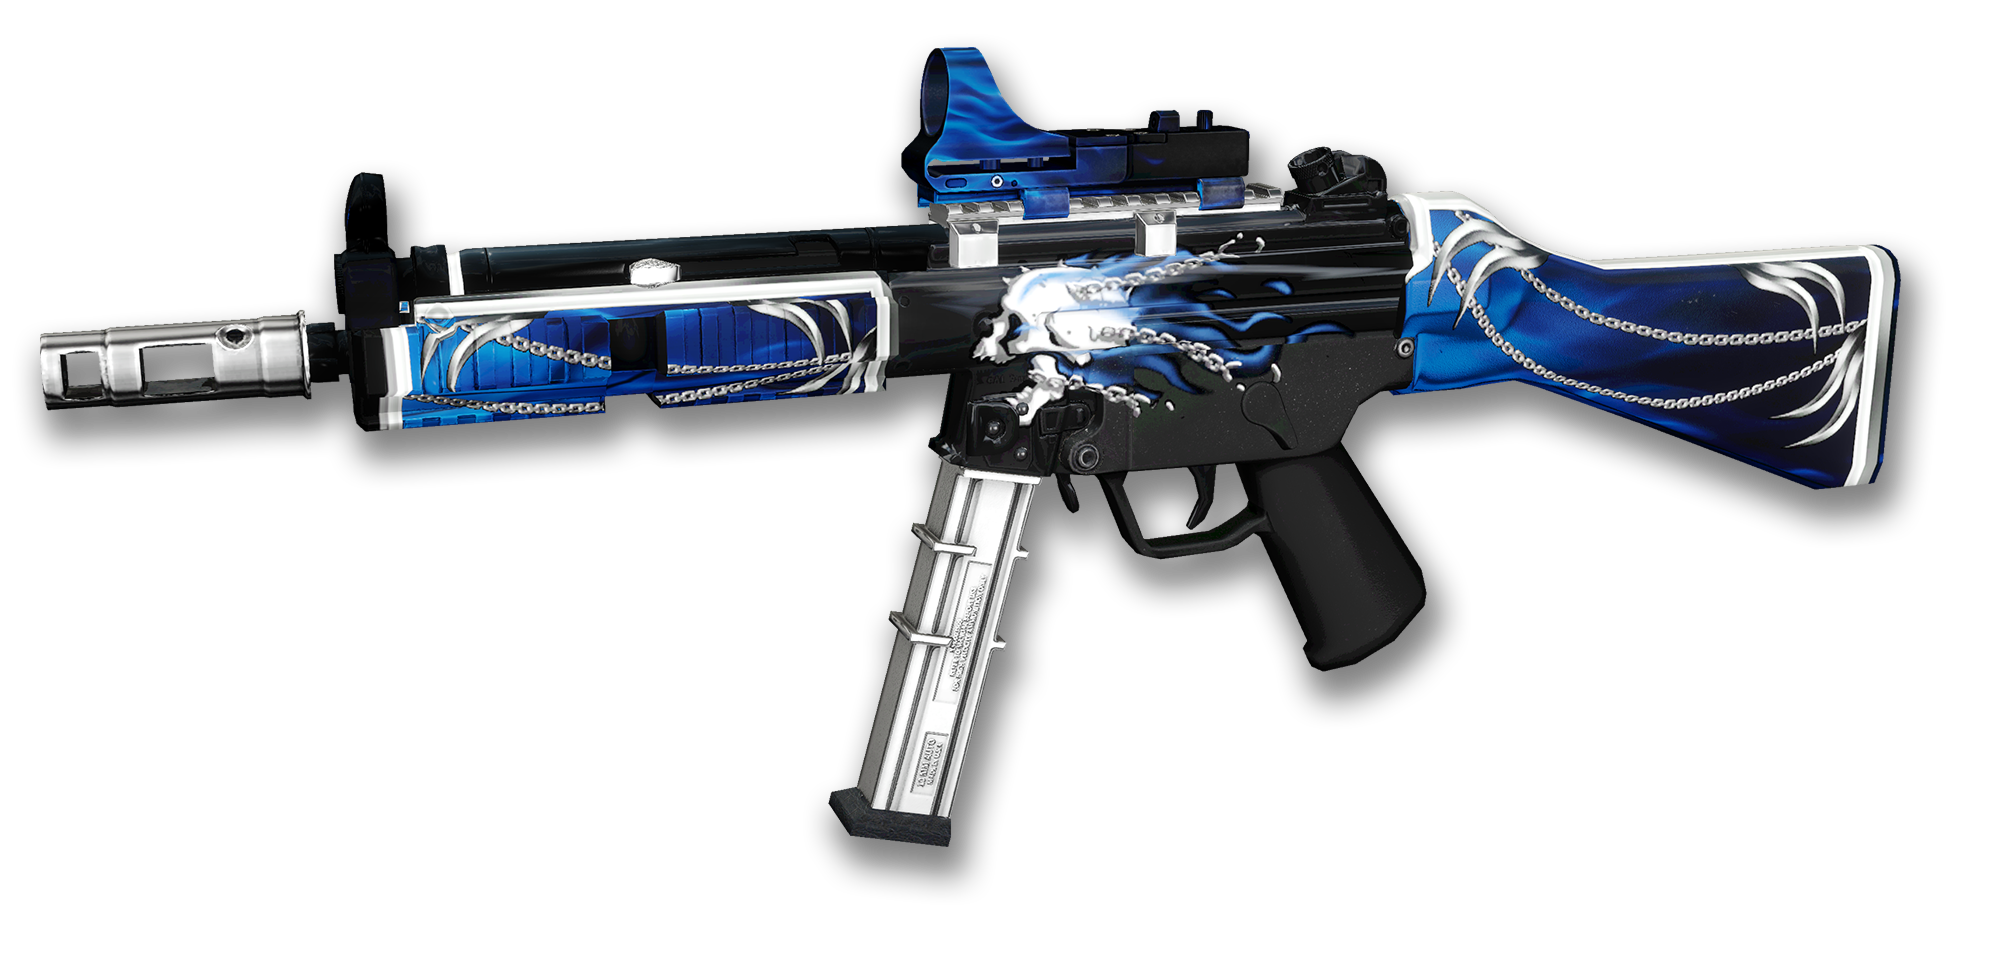 weapon skins exporting your files to the editor payday 2 workshop